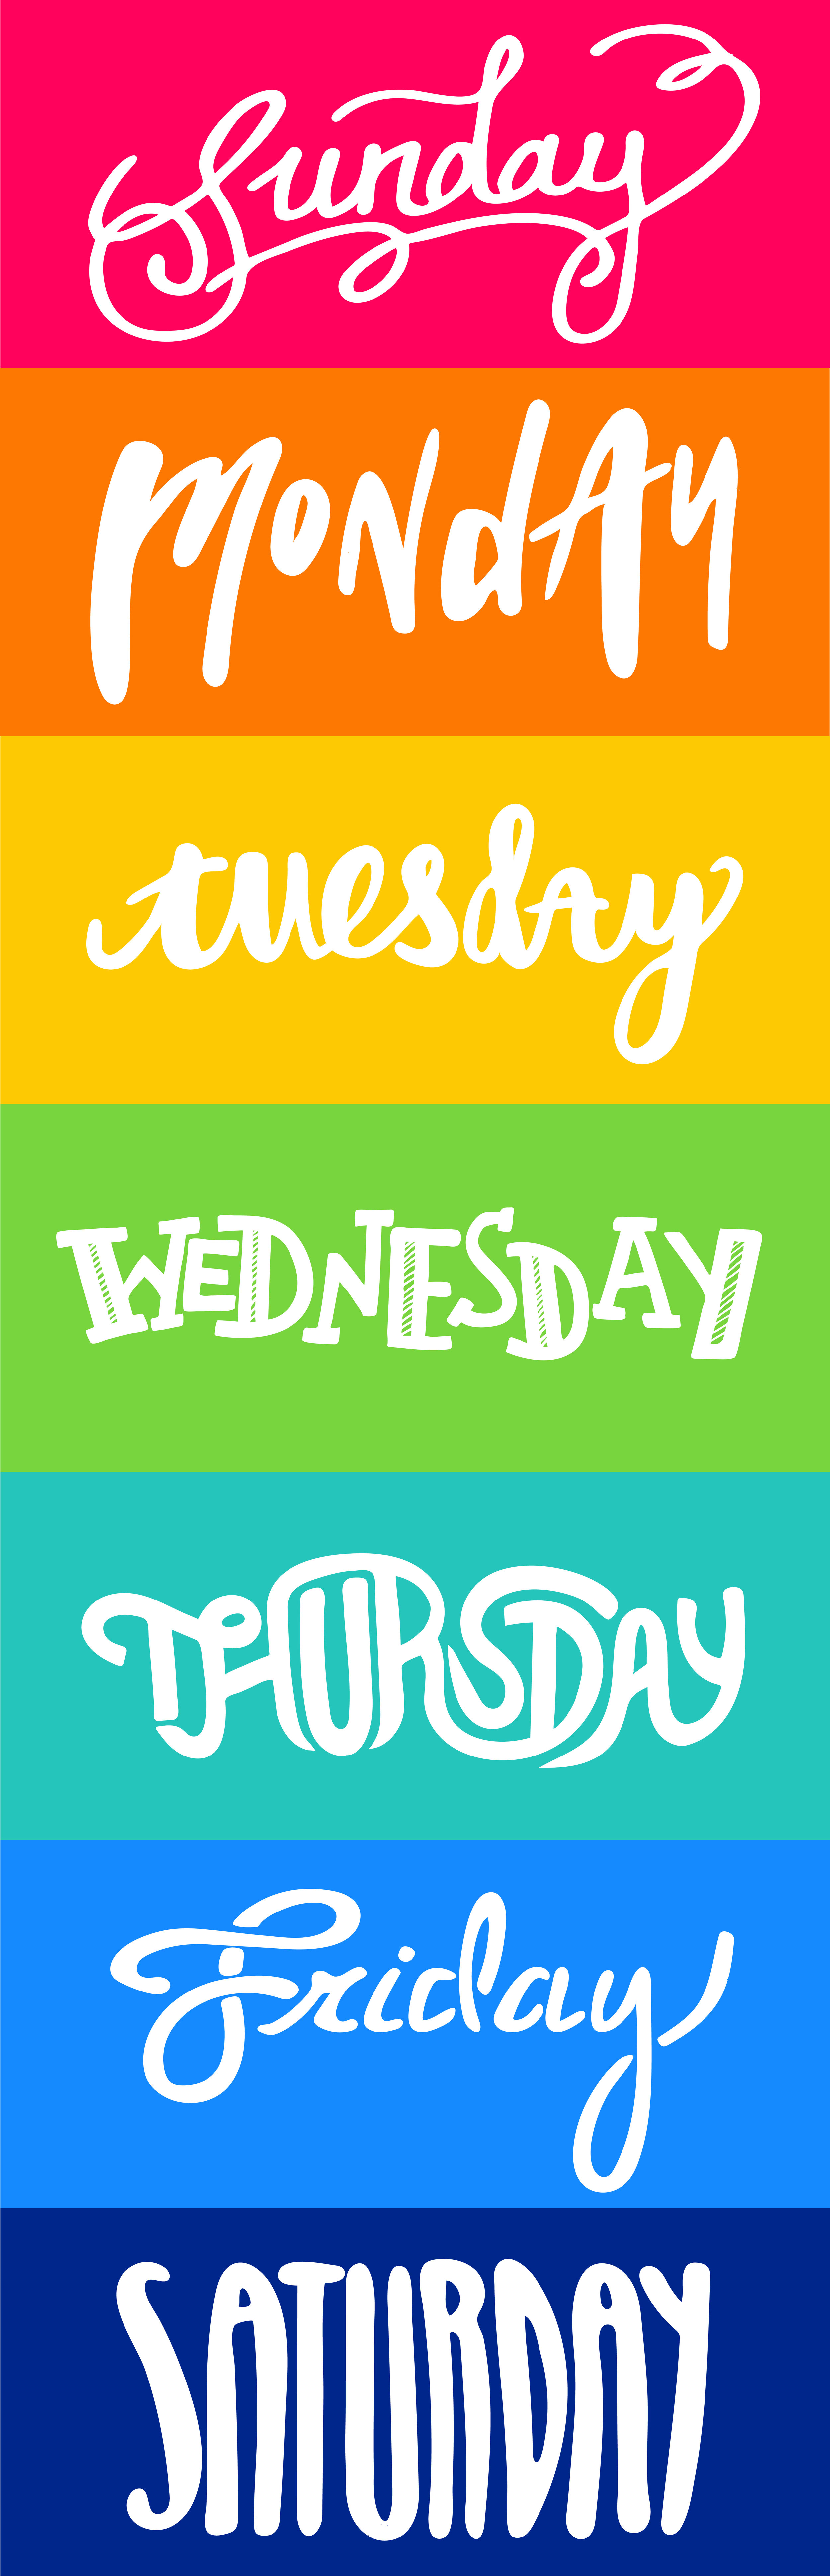 days of the week hand lettering-01.jpg